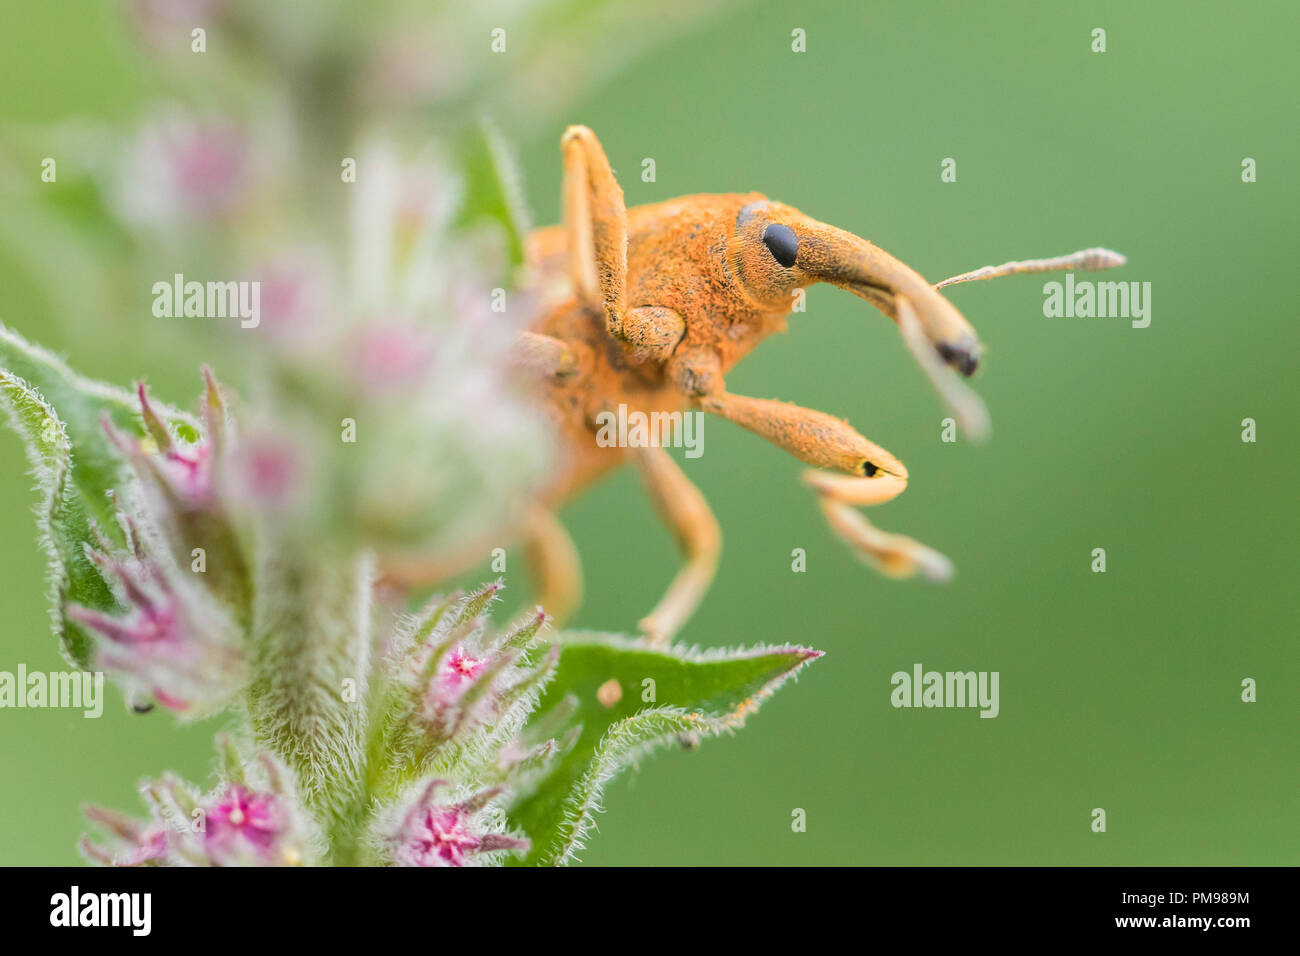 Lixus pulverulentus, close-up of adult on a plant - Stock Image